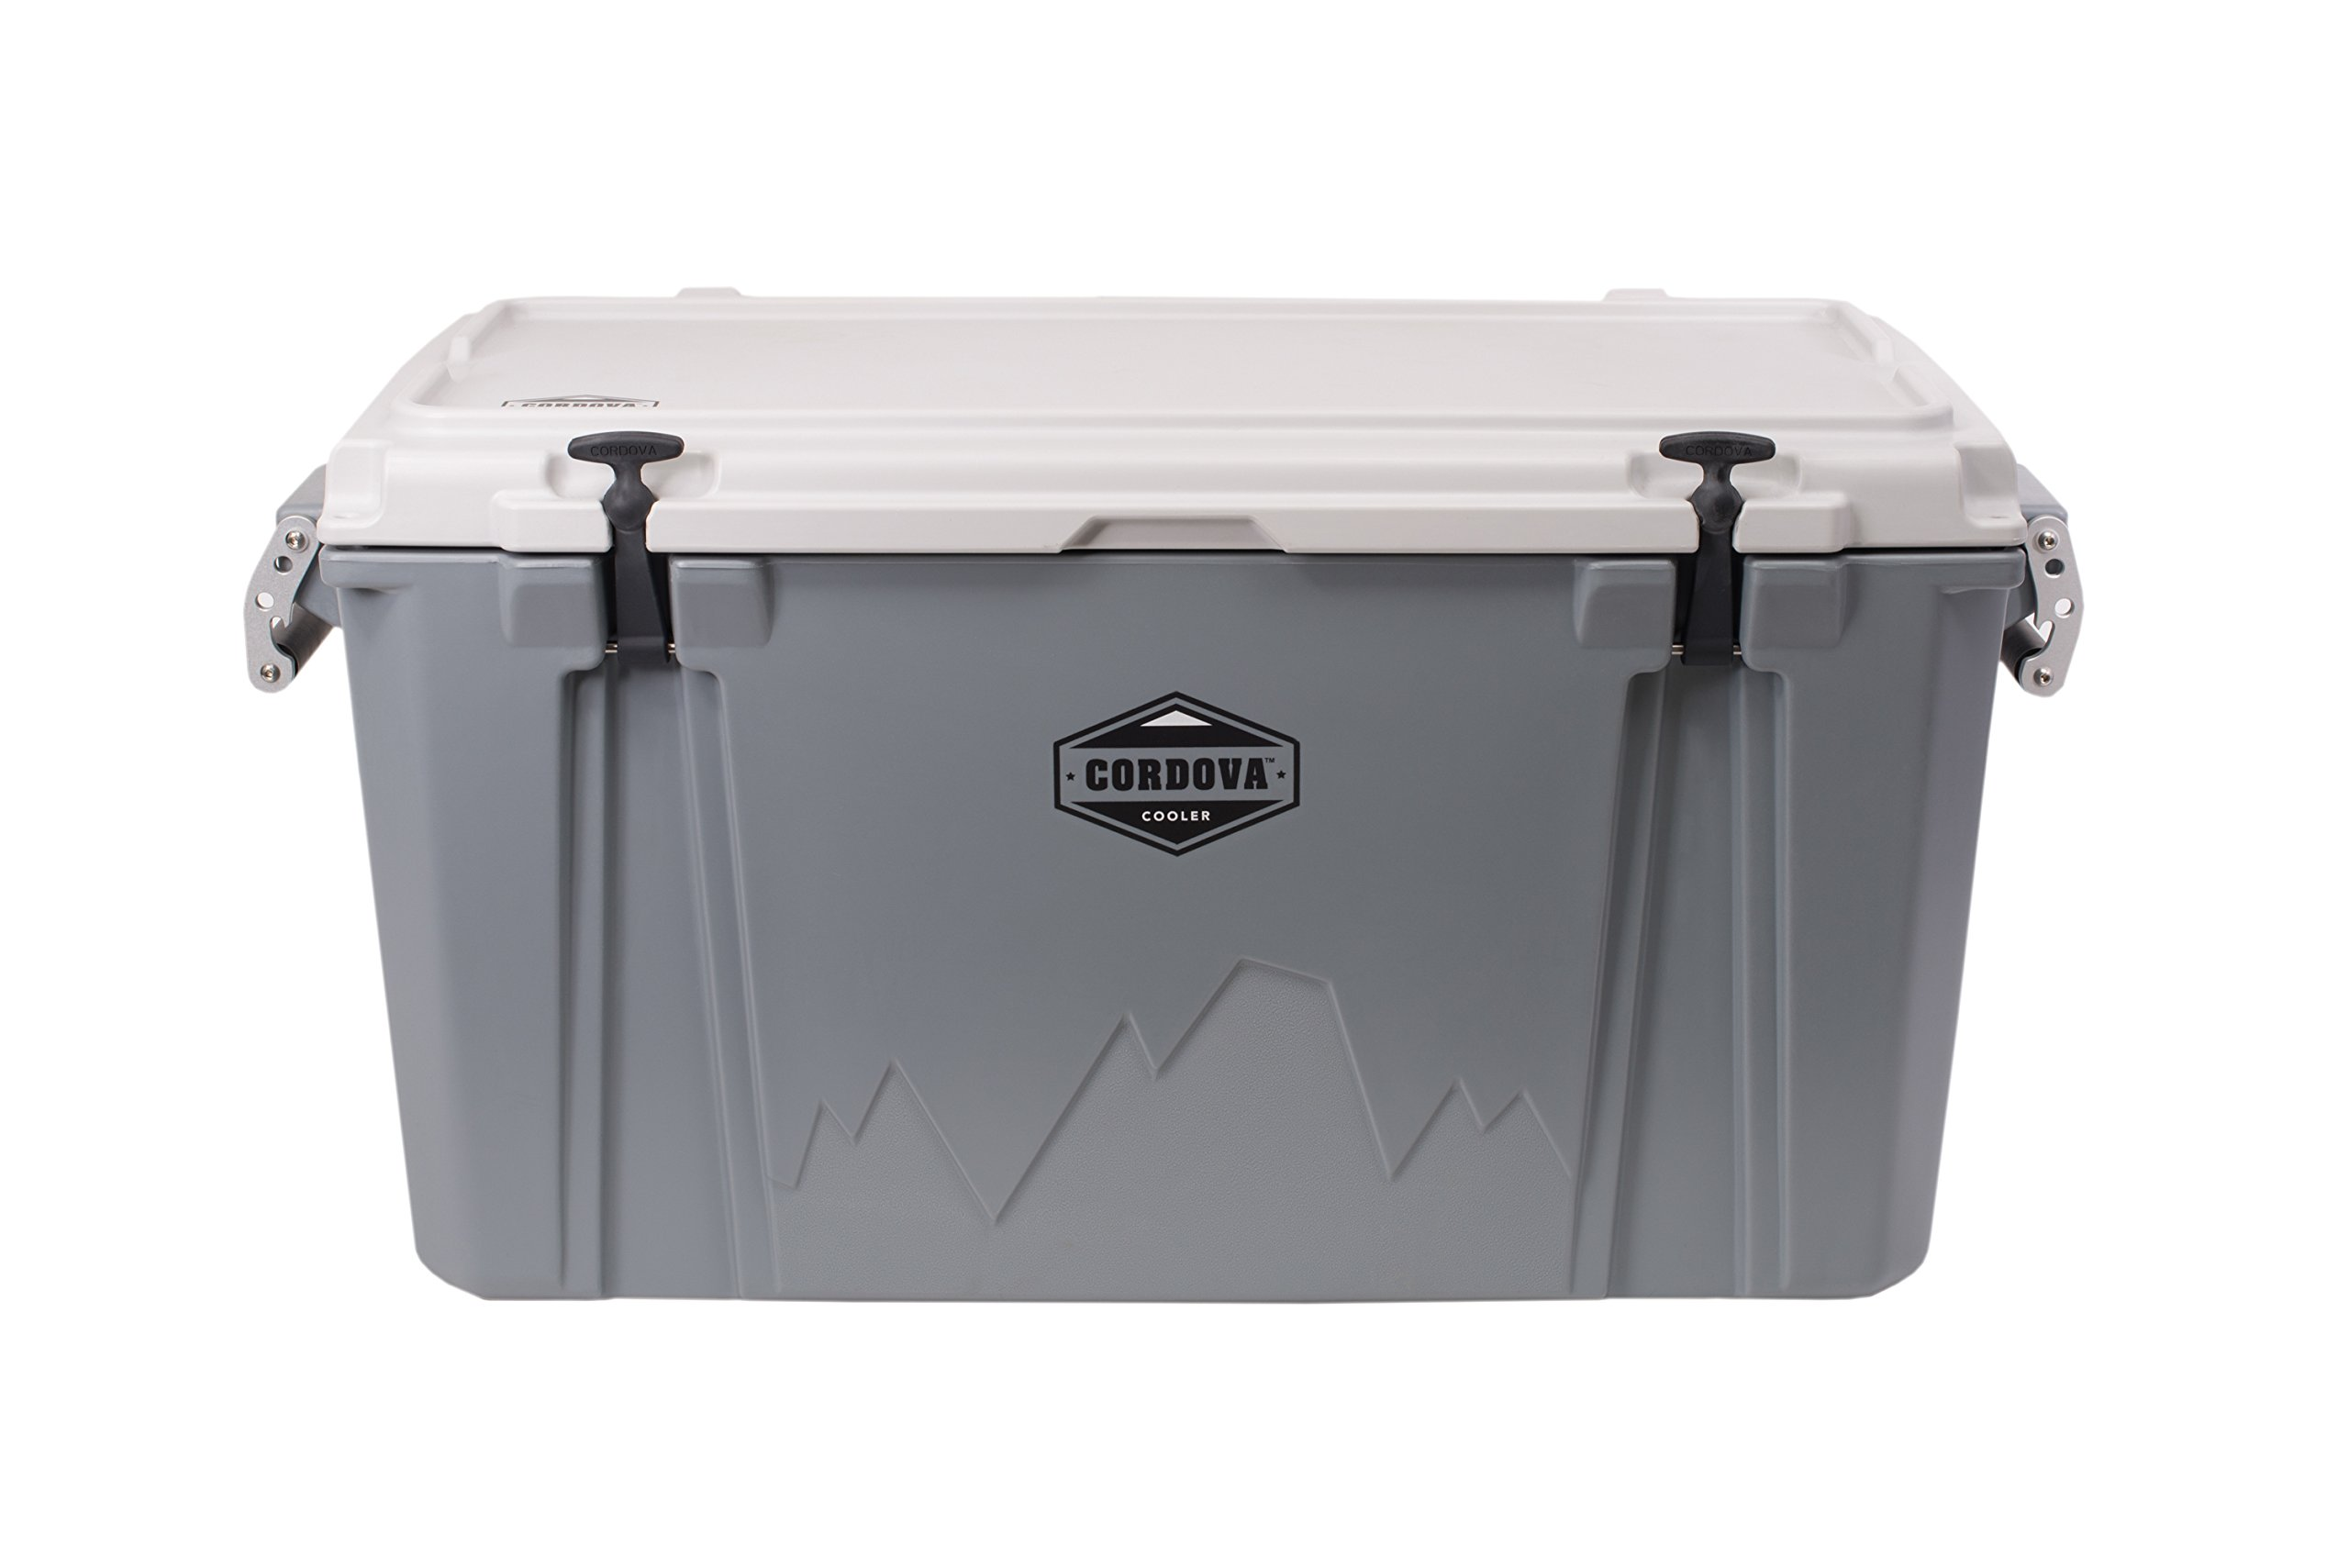 Cordova Coolers 100 Large Cooler - Gray by Cordova Coolers